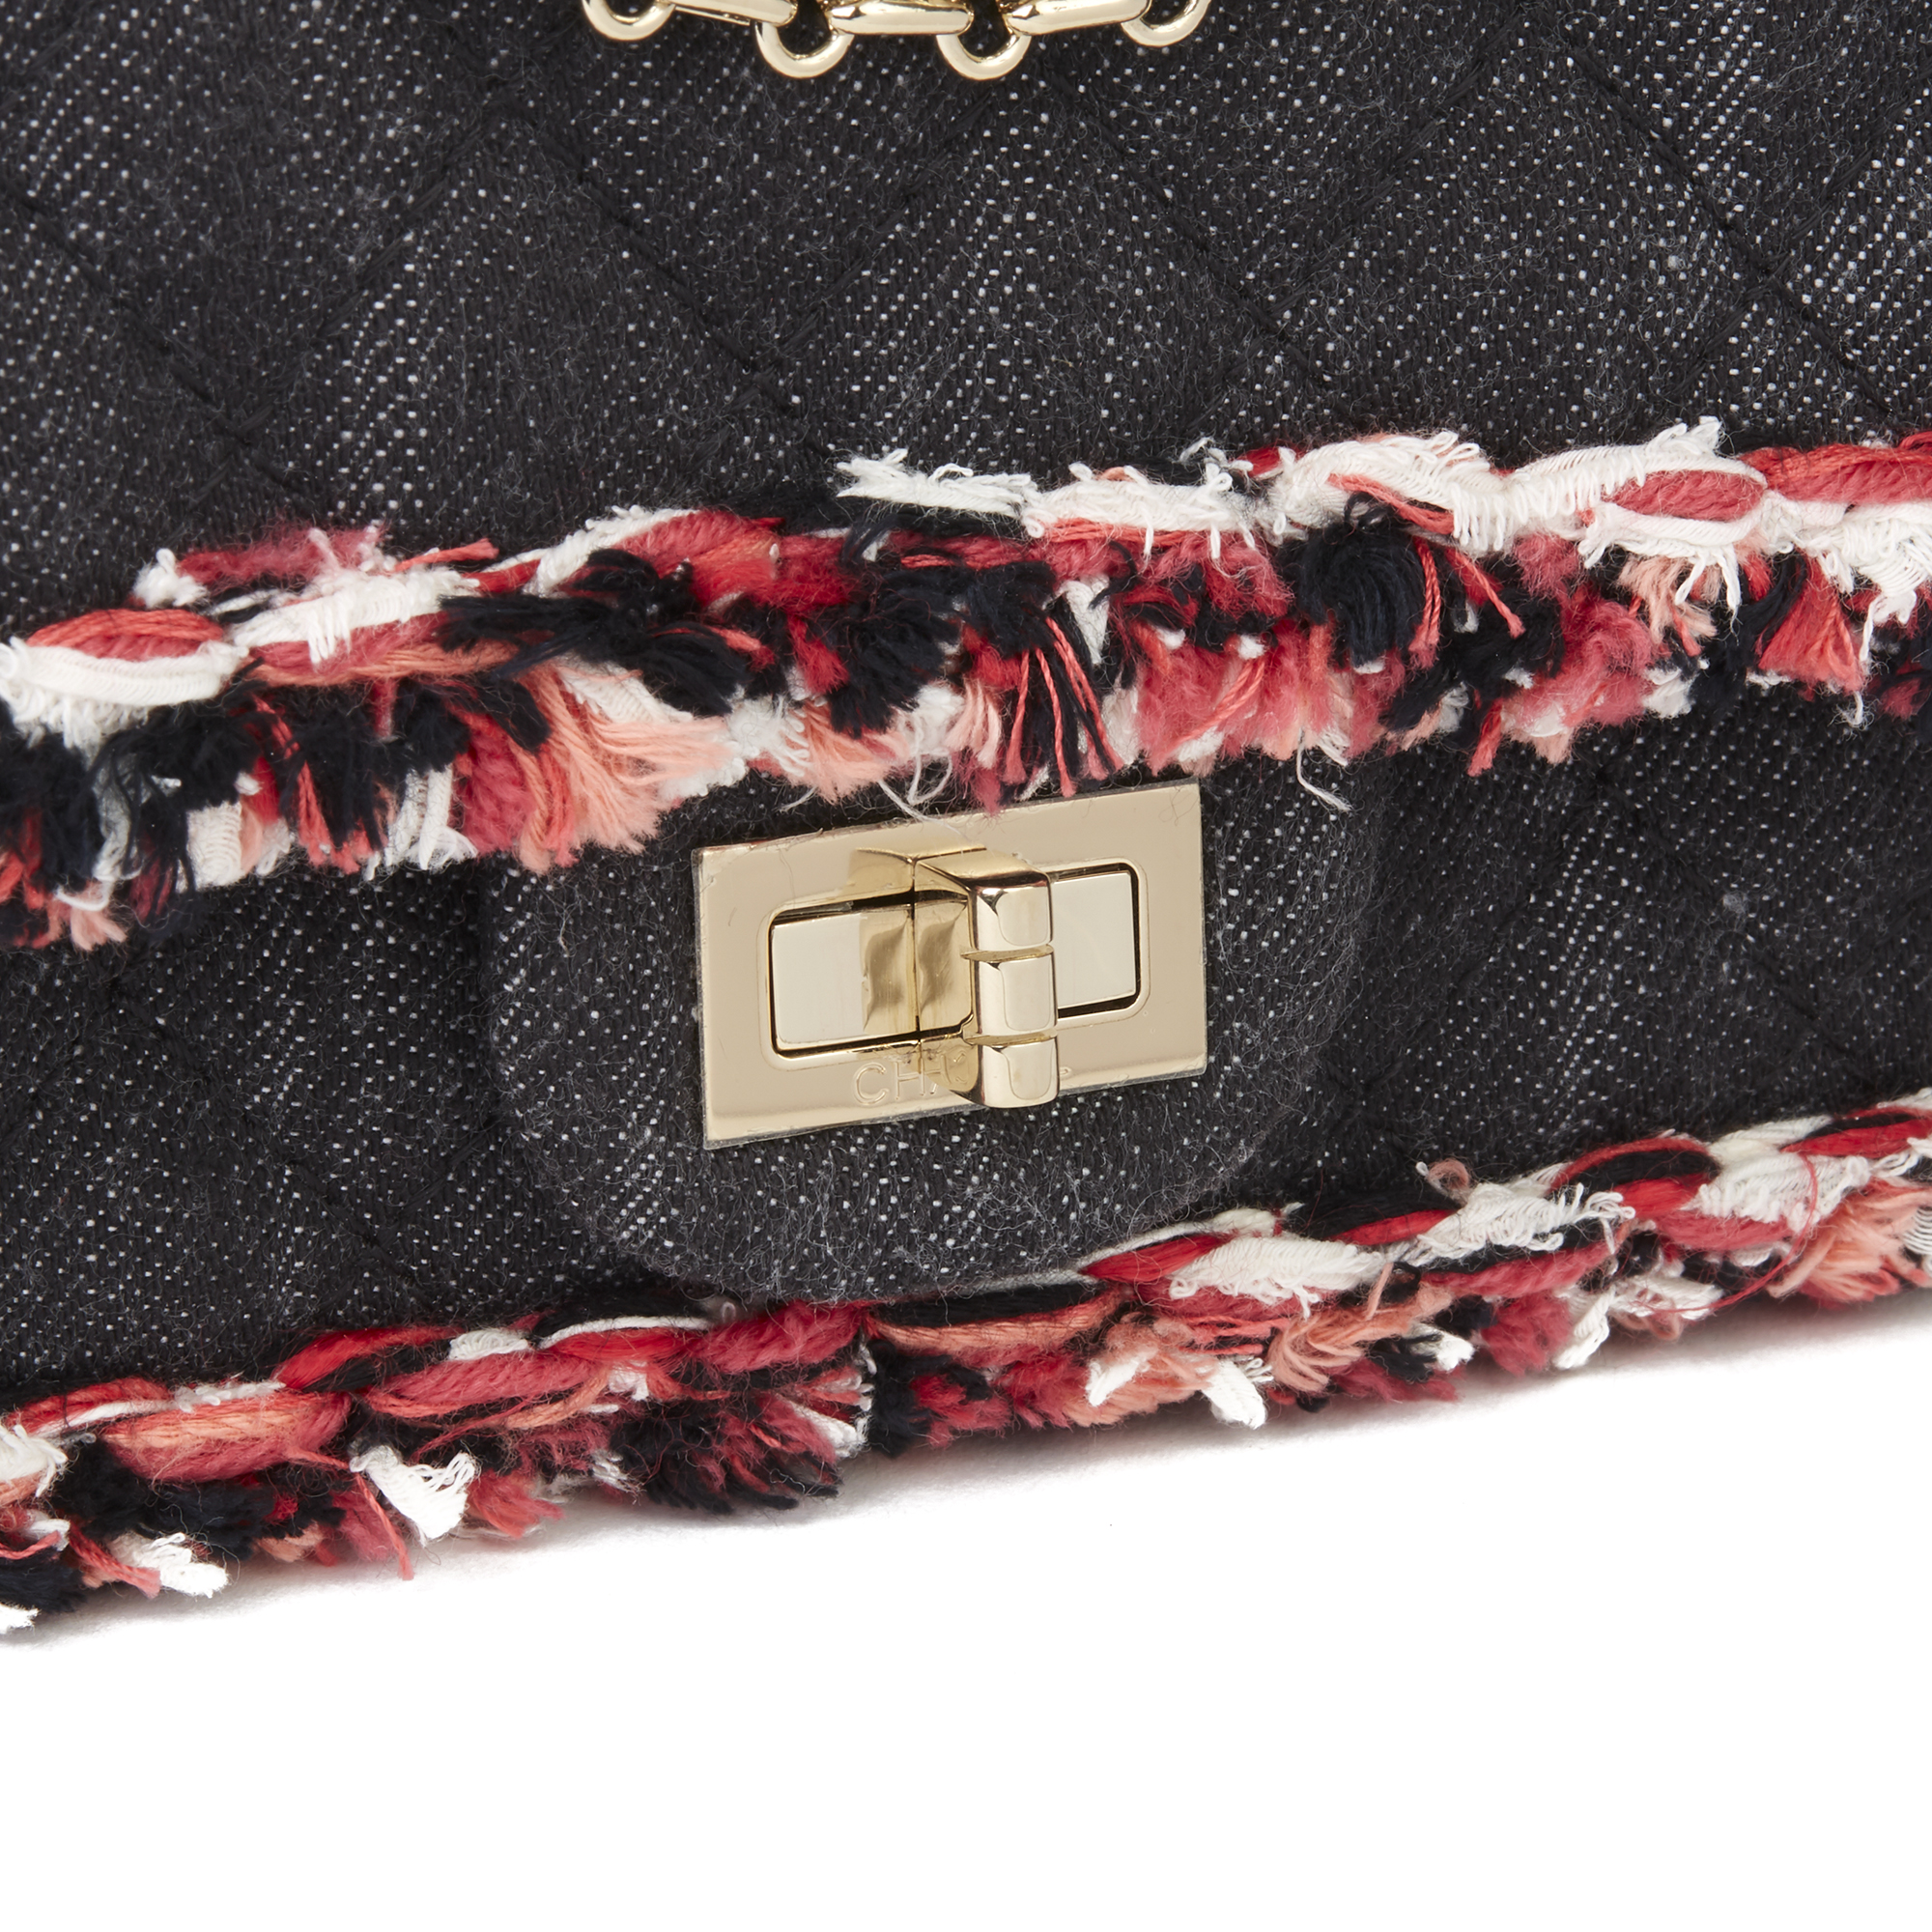 Chanel Black Quilted Denim & Pink Tweed 2.55 Reissue 225 Double Flap Bag - Image 8 of 12